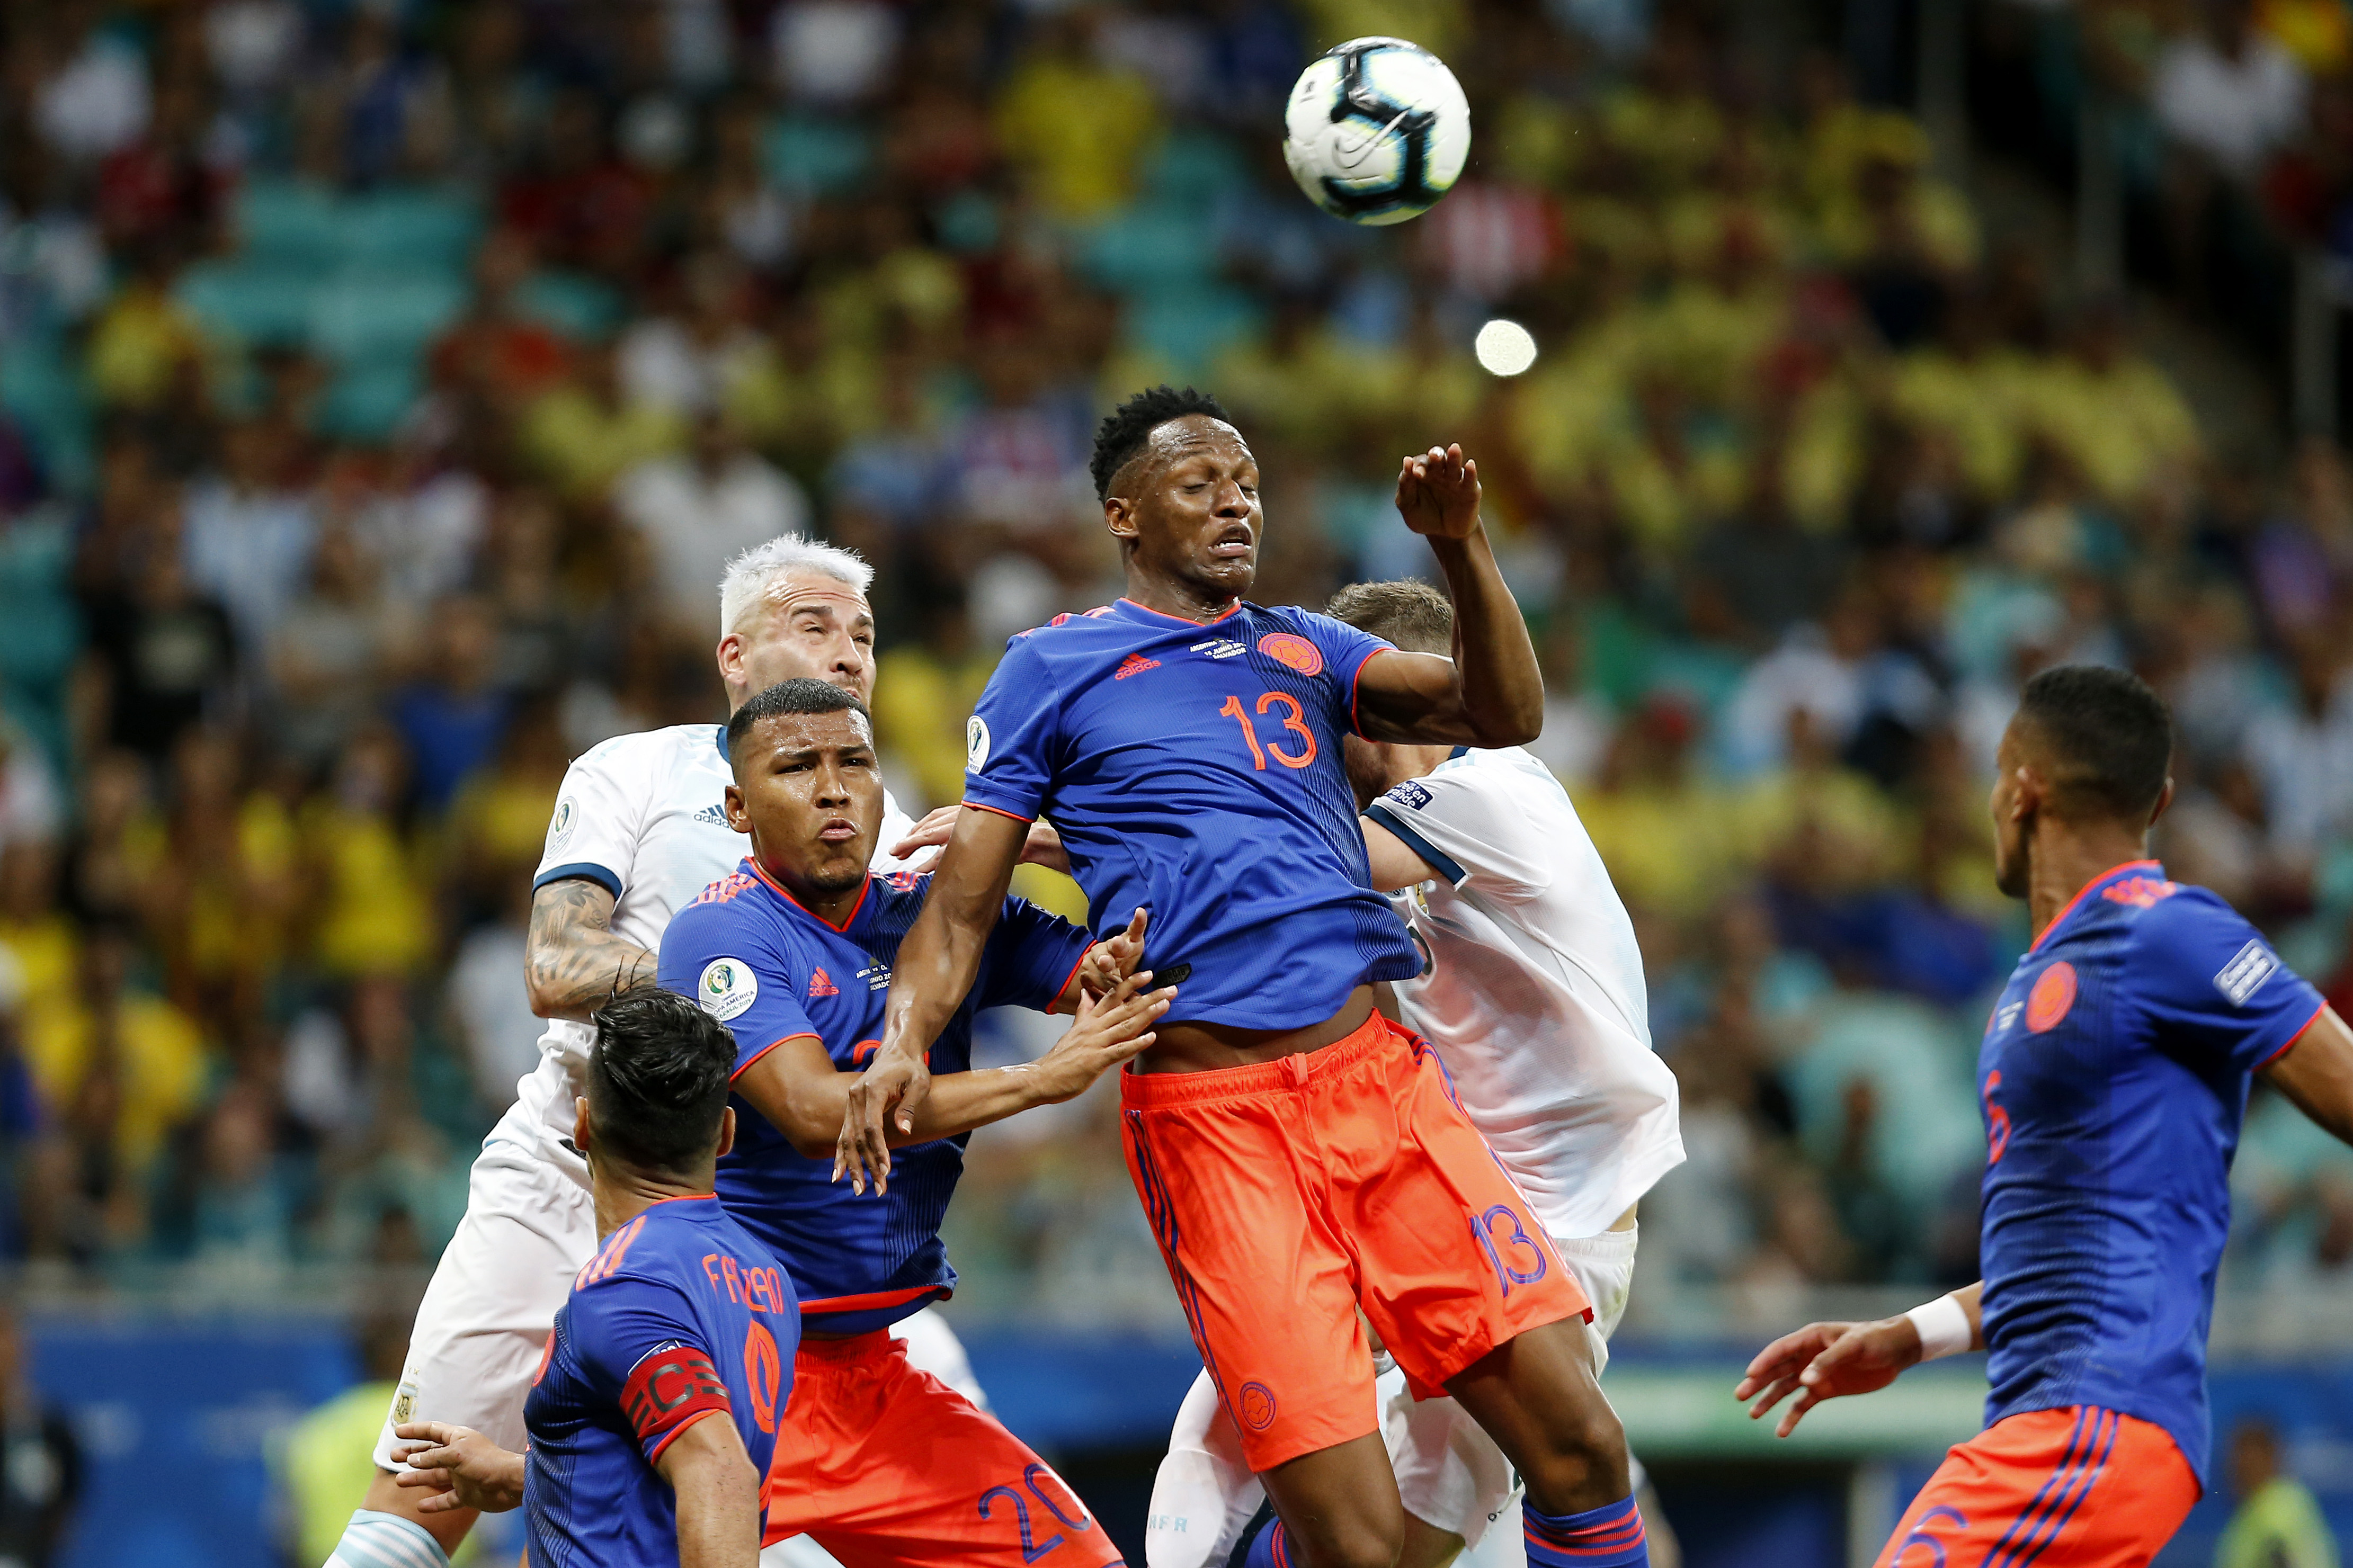 Colombia vs Qatar live stream: Lineups, Kickoff time, TV listings, how to watch Copa América 2019 online